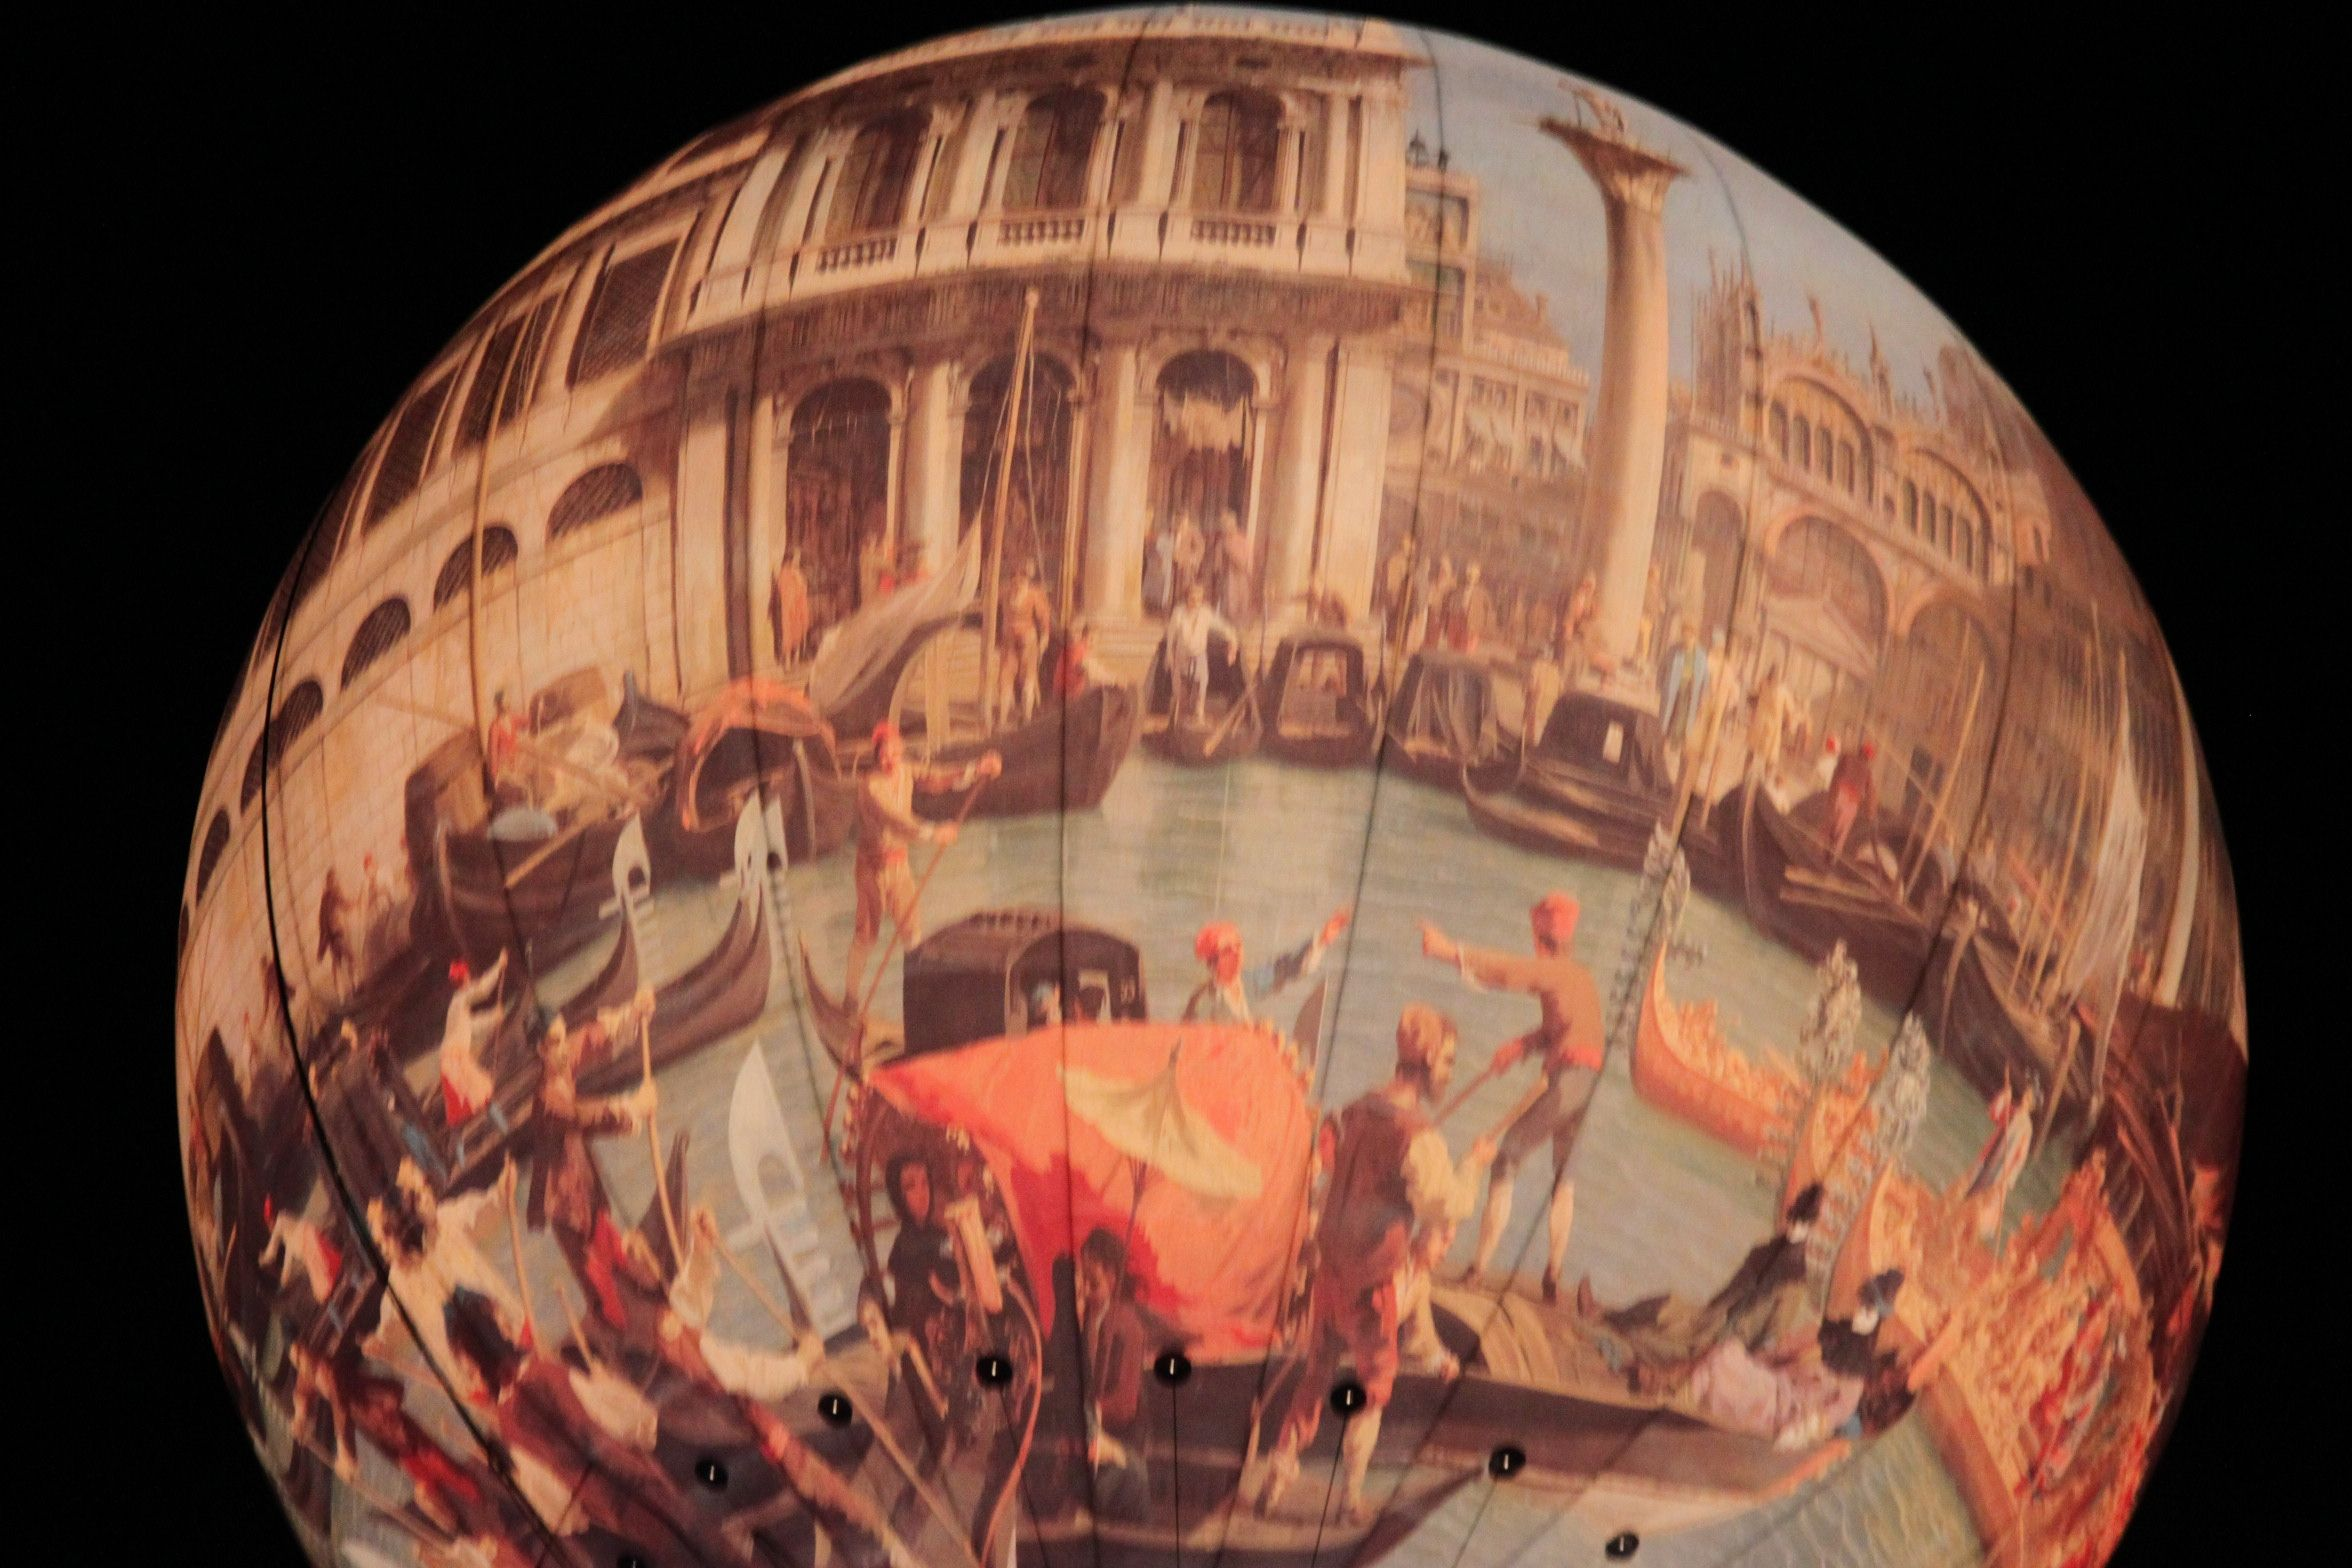 A hot air balloon depicts Venice